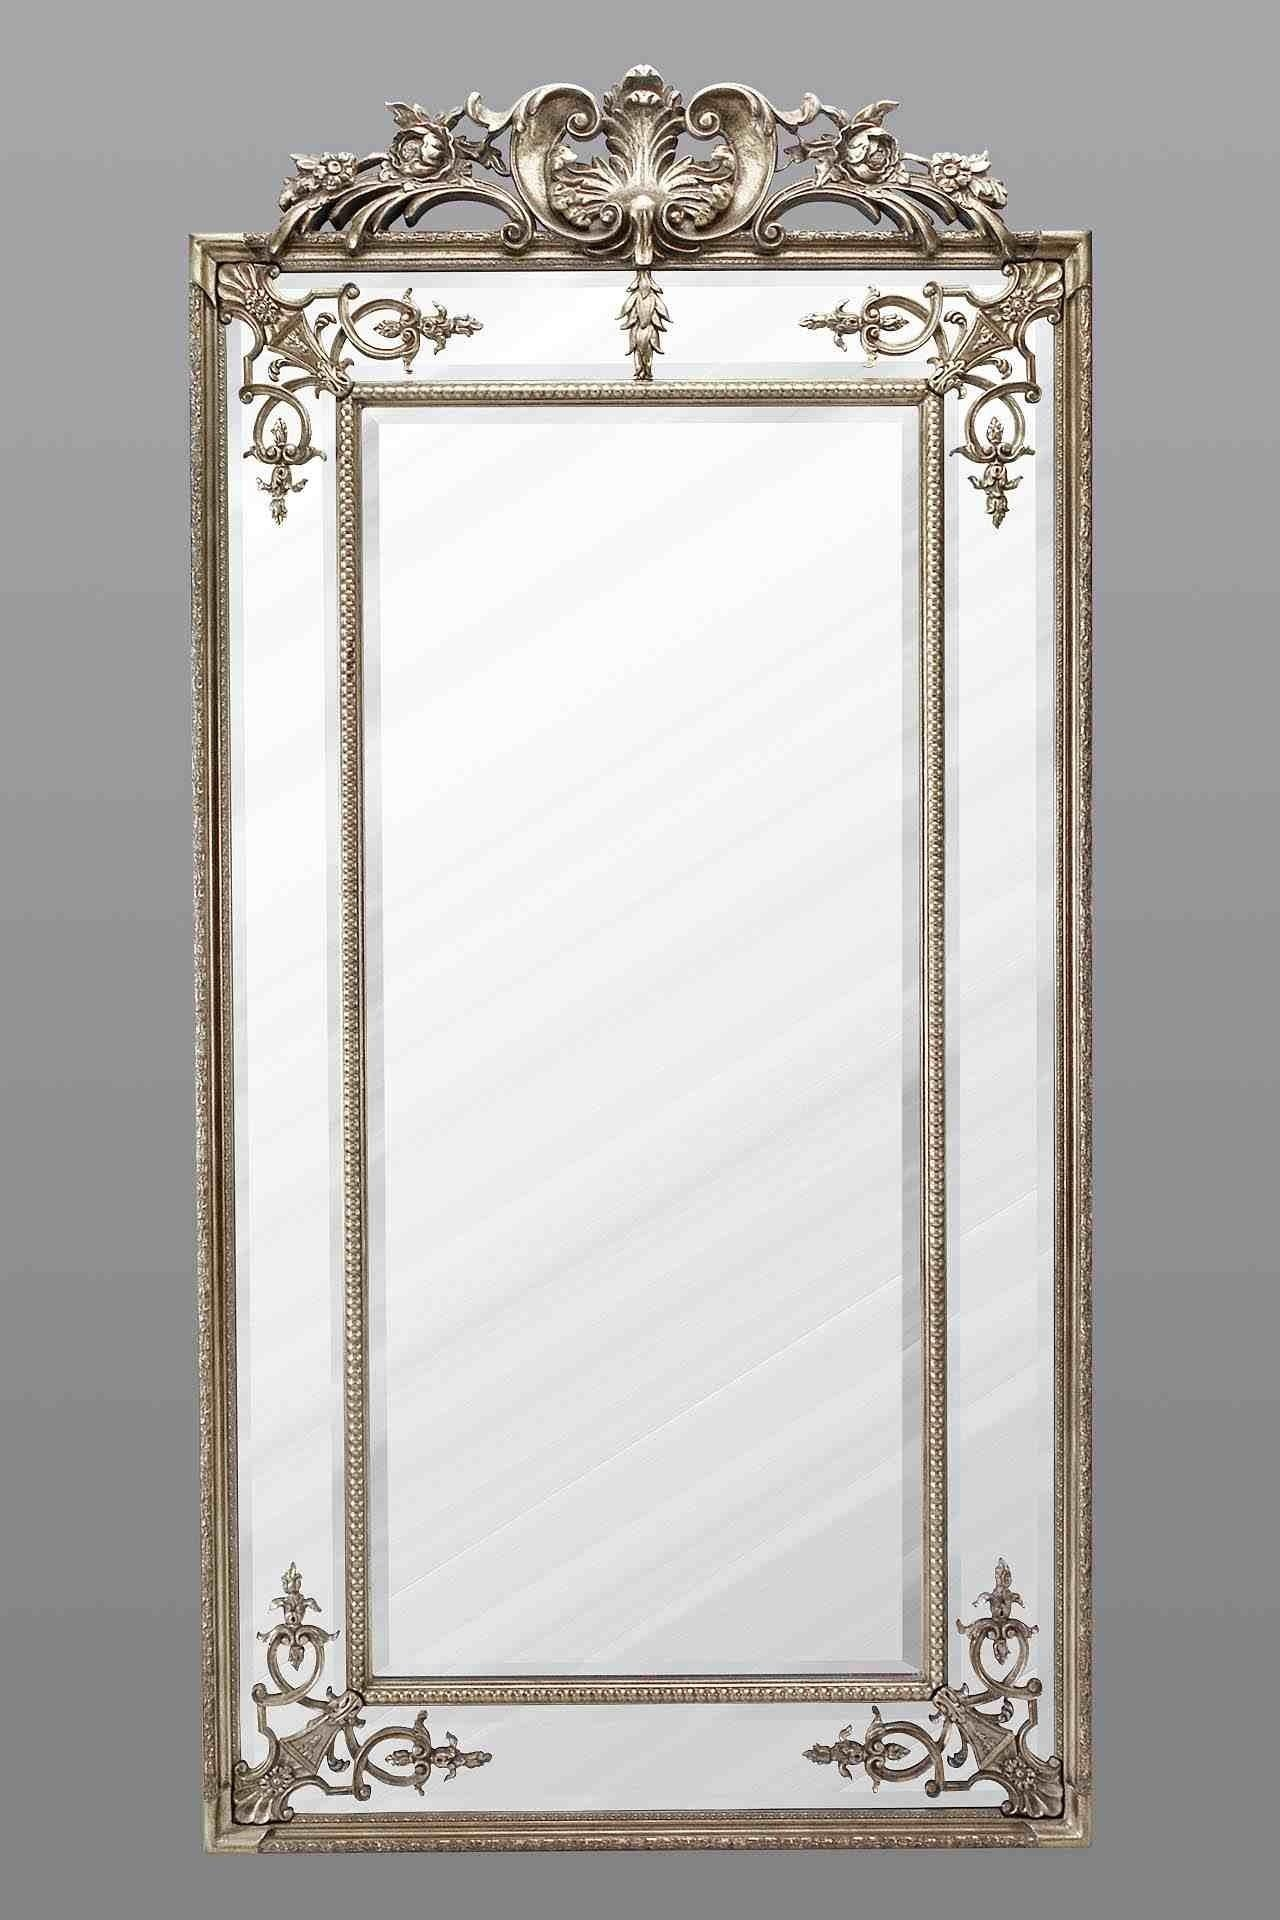 Large Full Length Mirror | Vanity Decoration Throughout Large Long Mirror (Image 16 of 20)